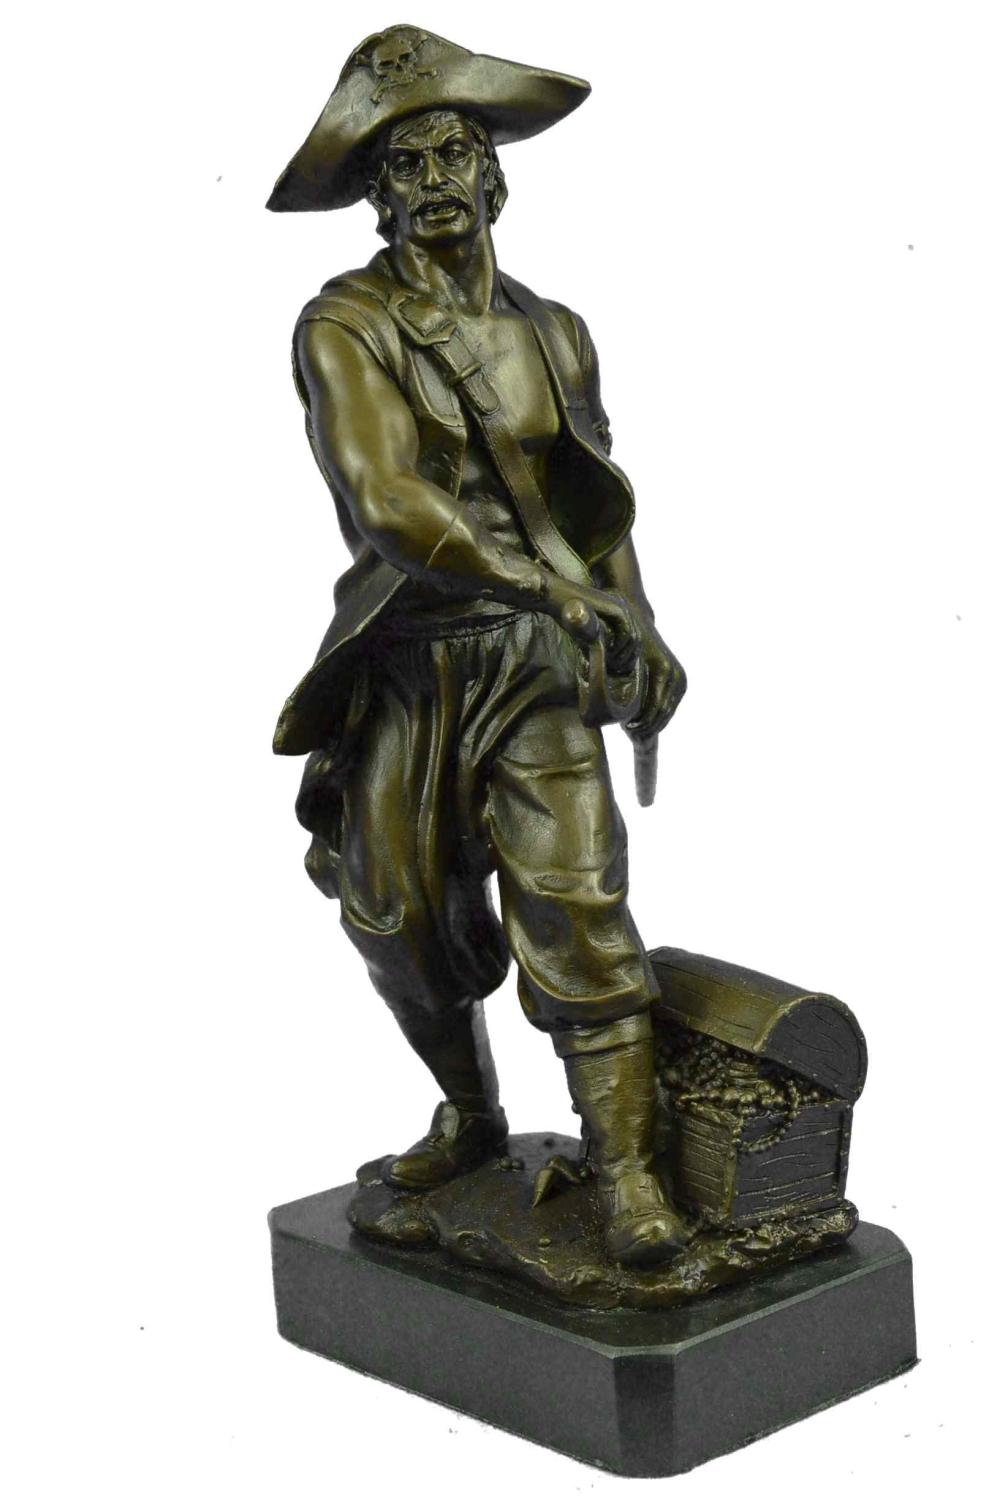 Handmade Art Collector Collectible Pirate with Sword Bronze Sculpture